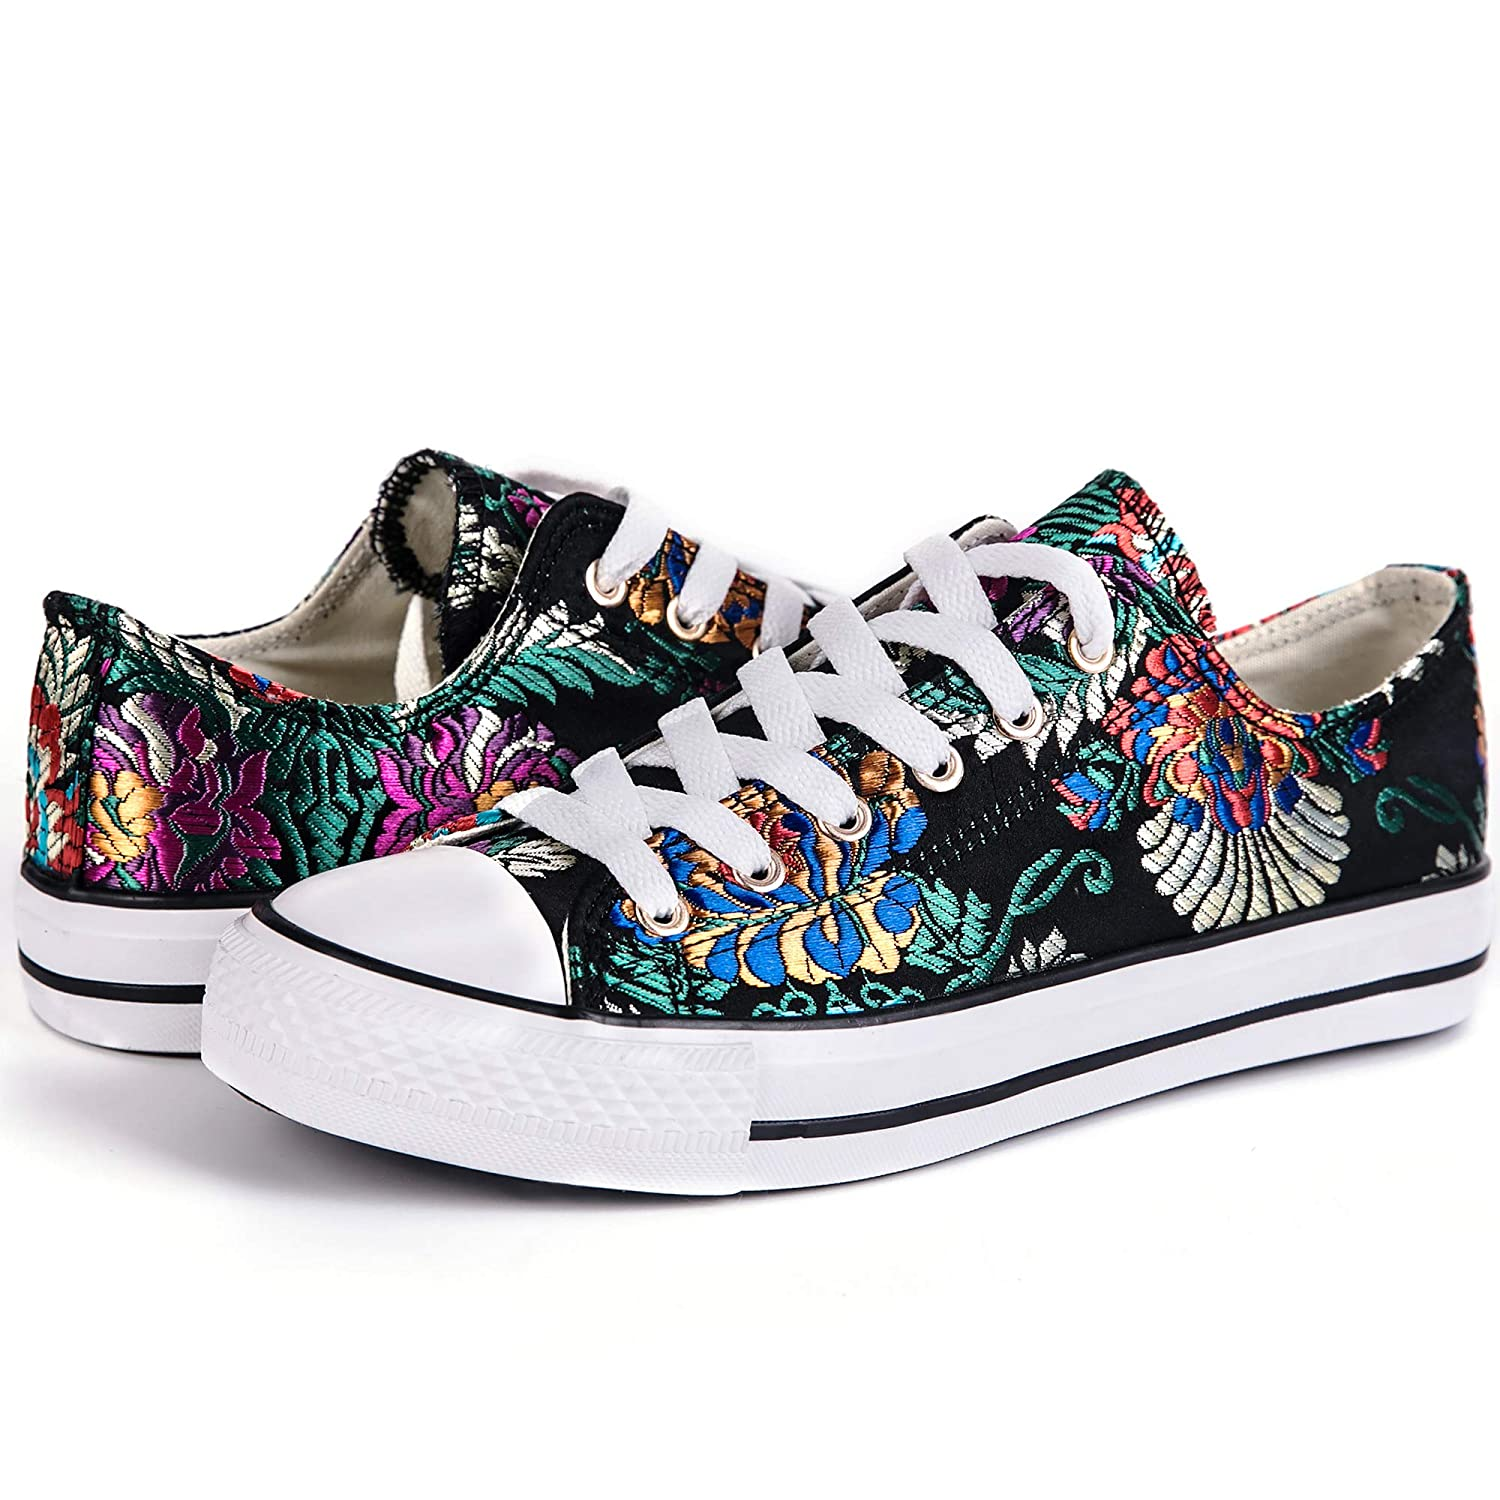 Canvas - Embroidered Flowers Lantina Women's Low Top Fashion Sneakers